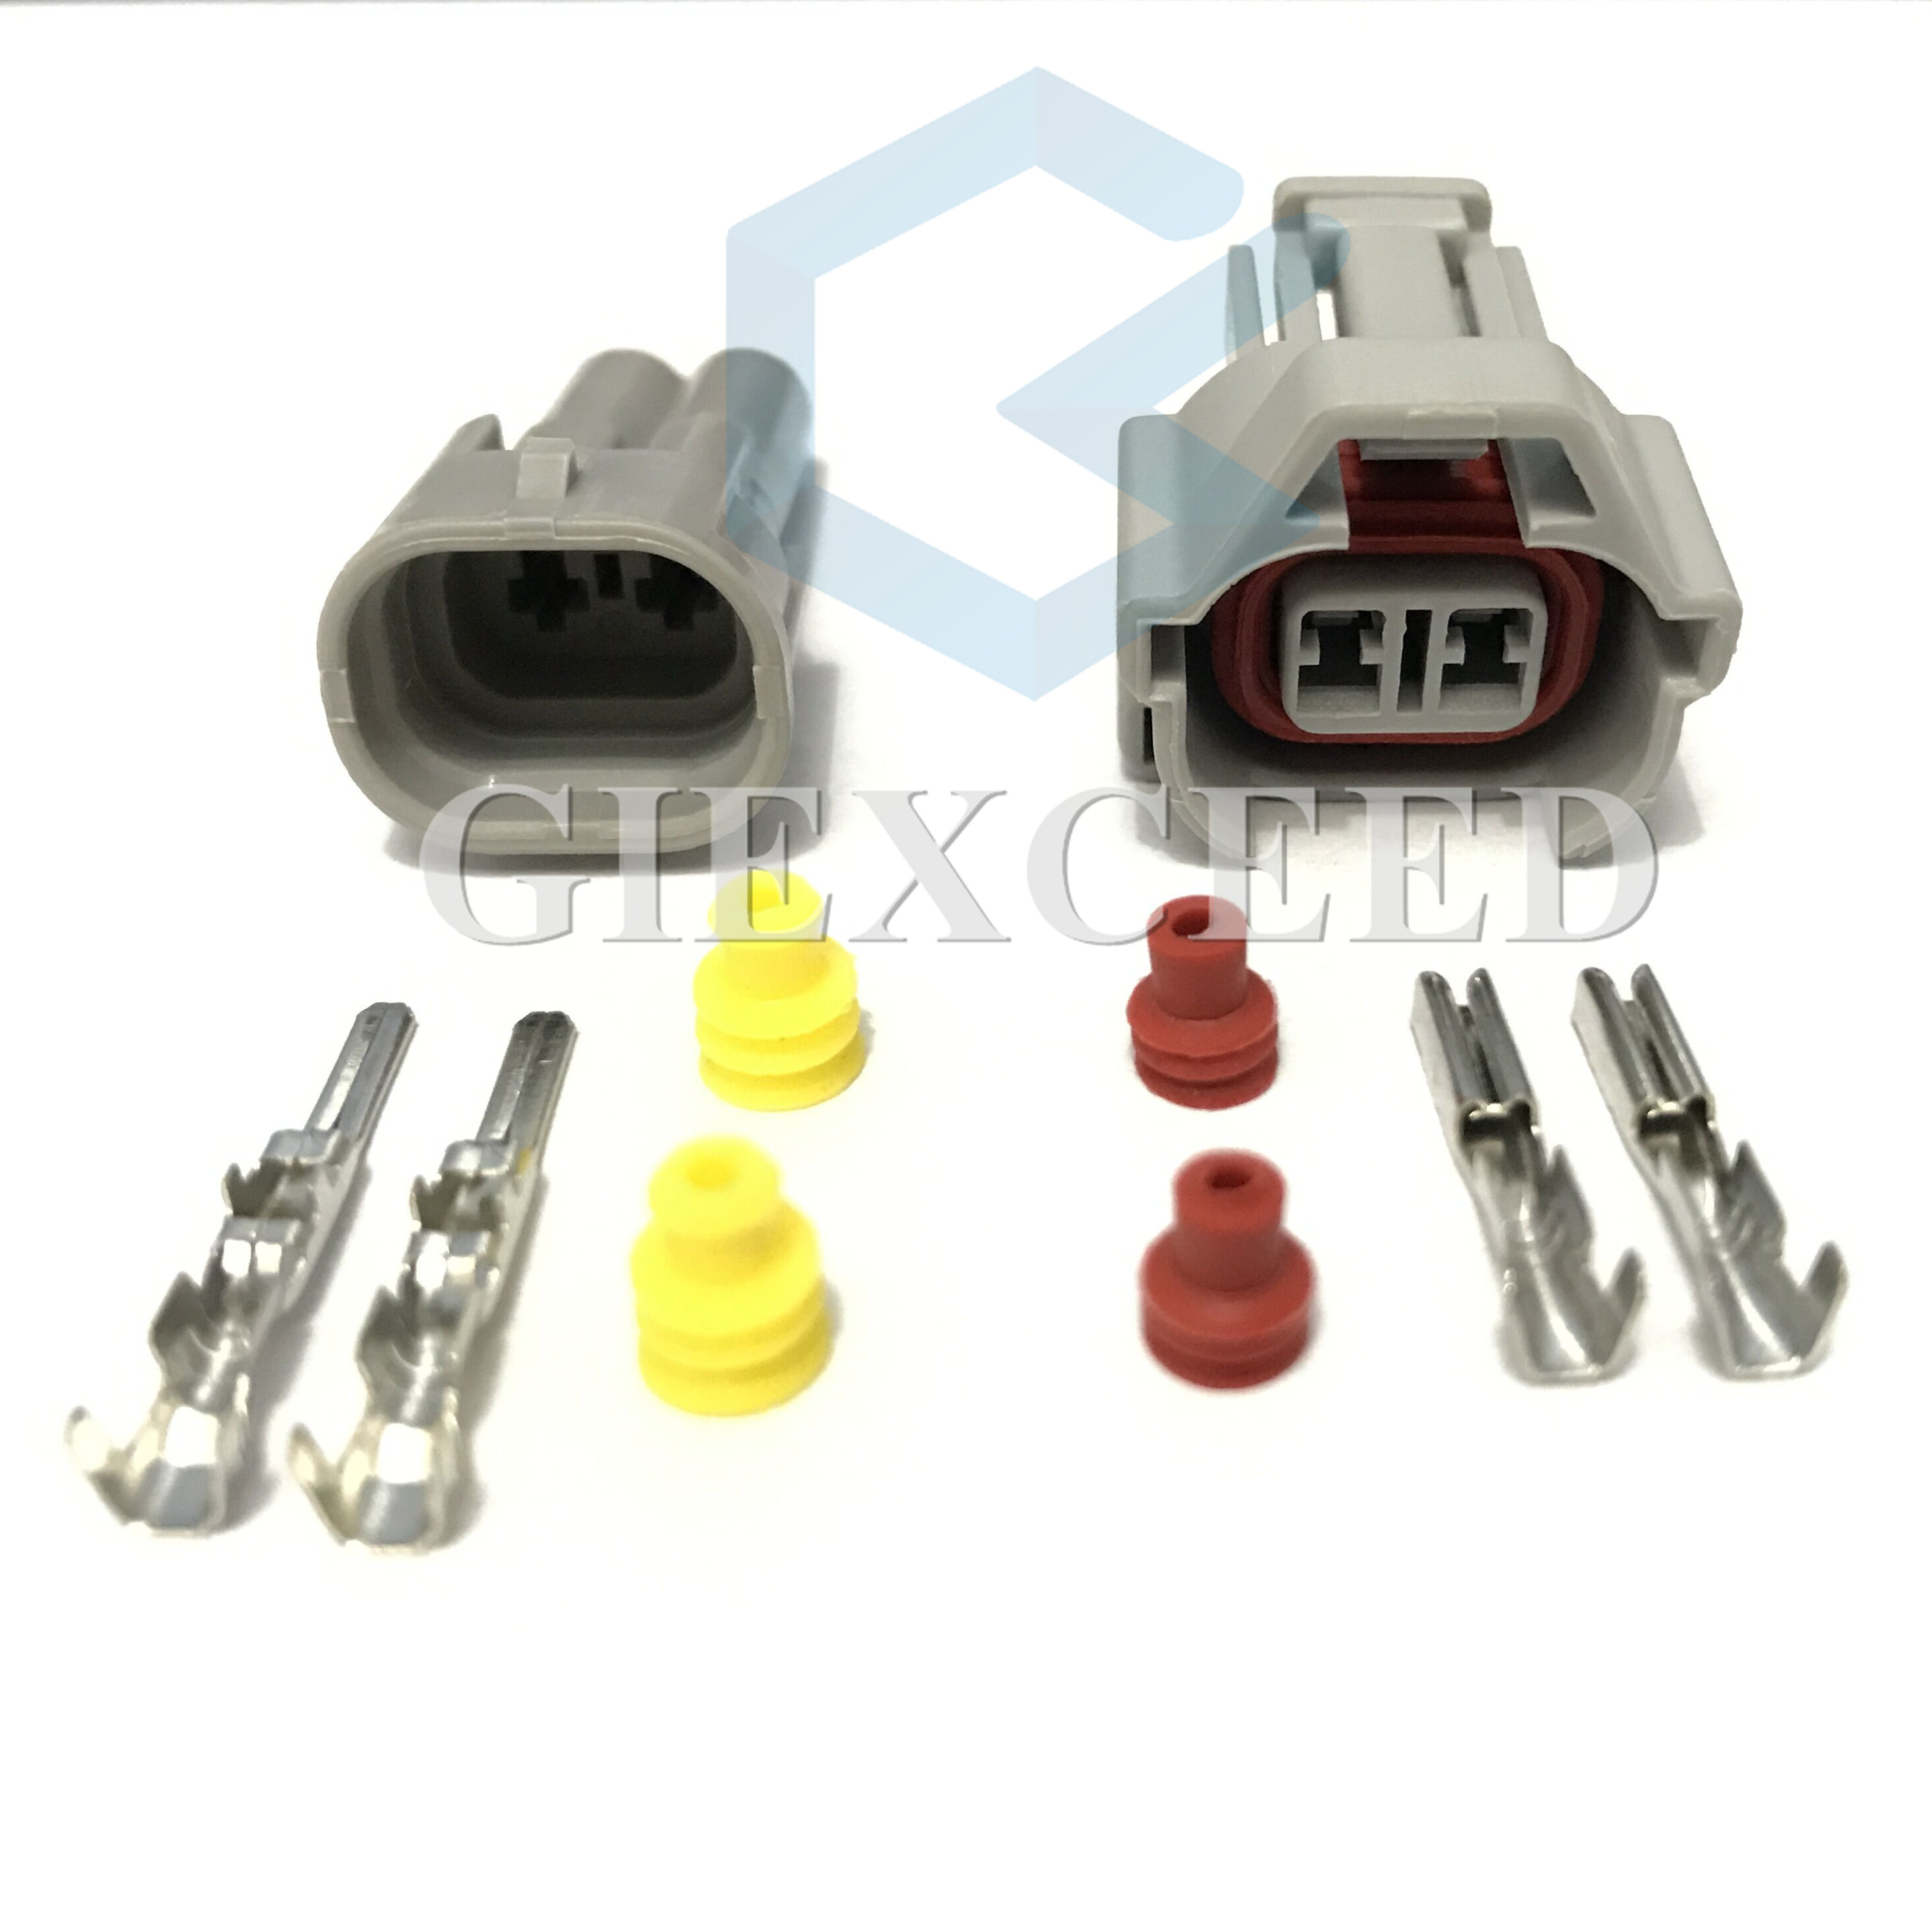 6-Denso Female to EV6 Male Fuel Injector Connector Electrical Plug Clip Adapter